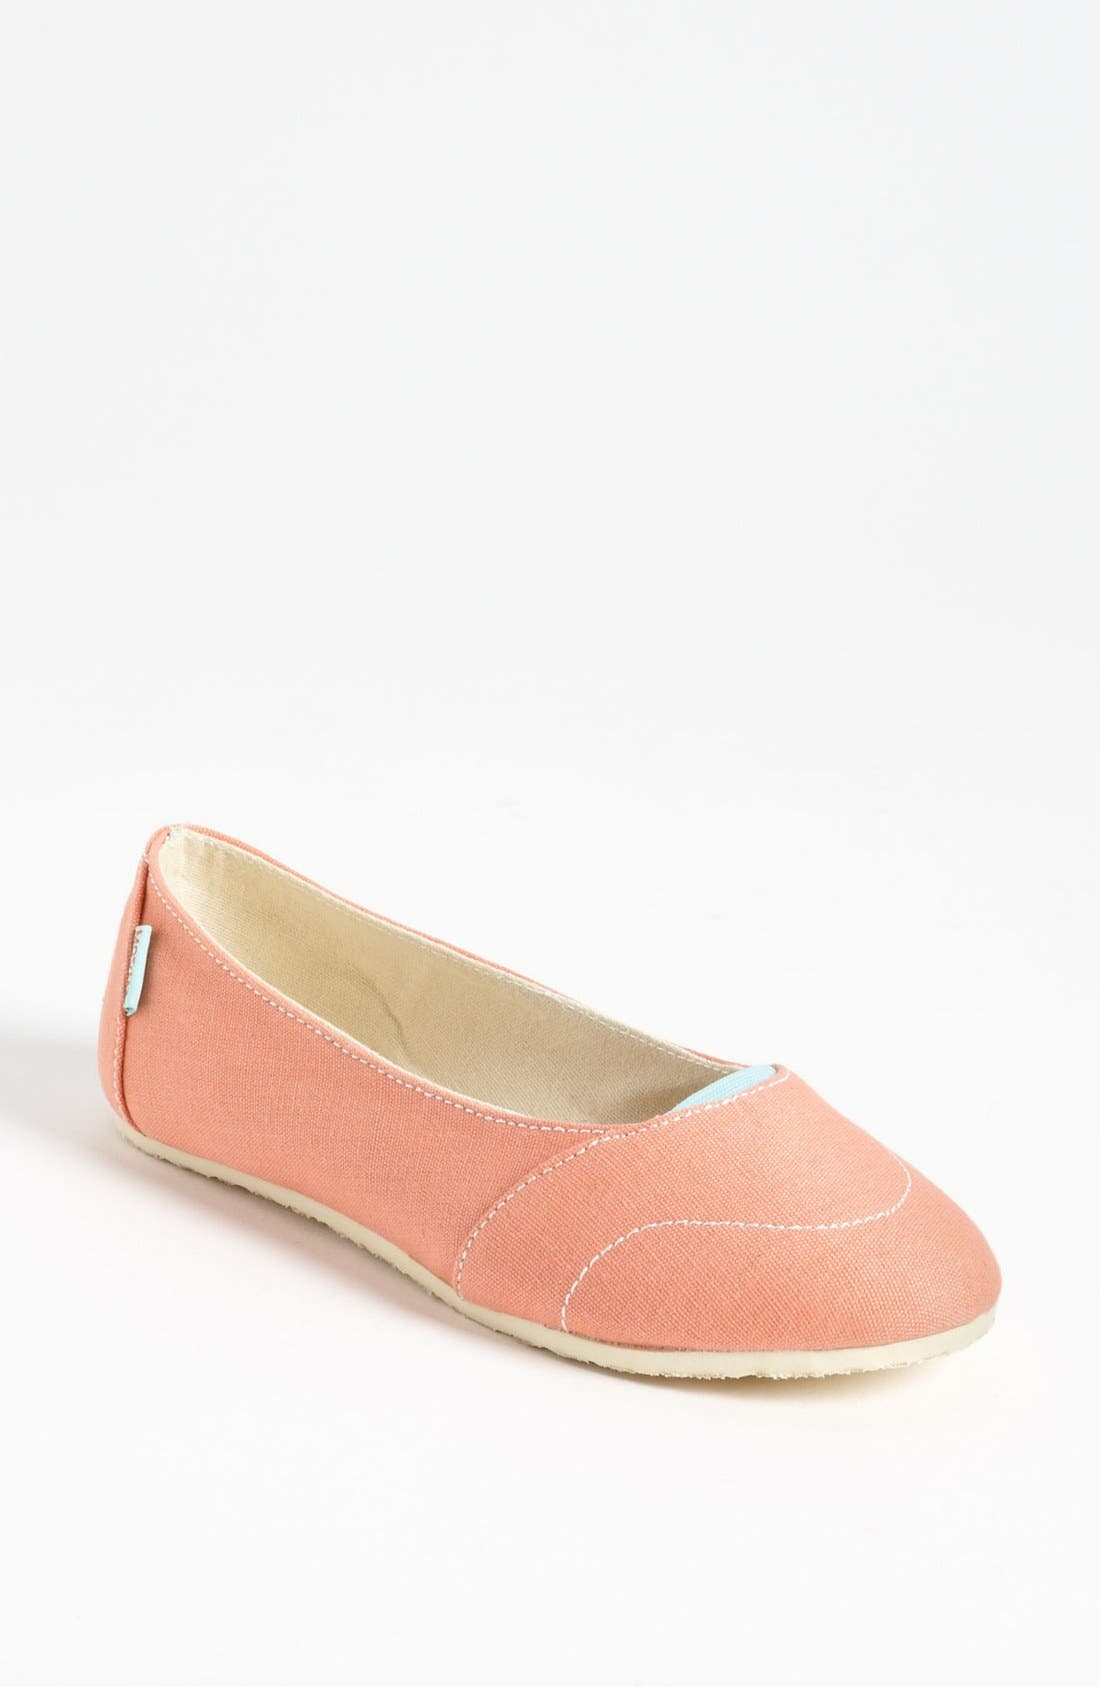 Main Image - The People's Movement Ballet Flat